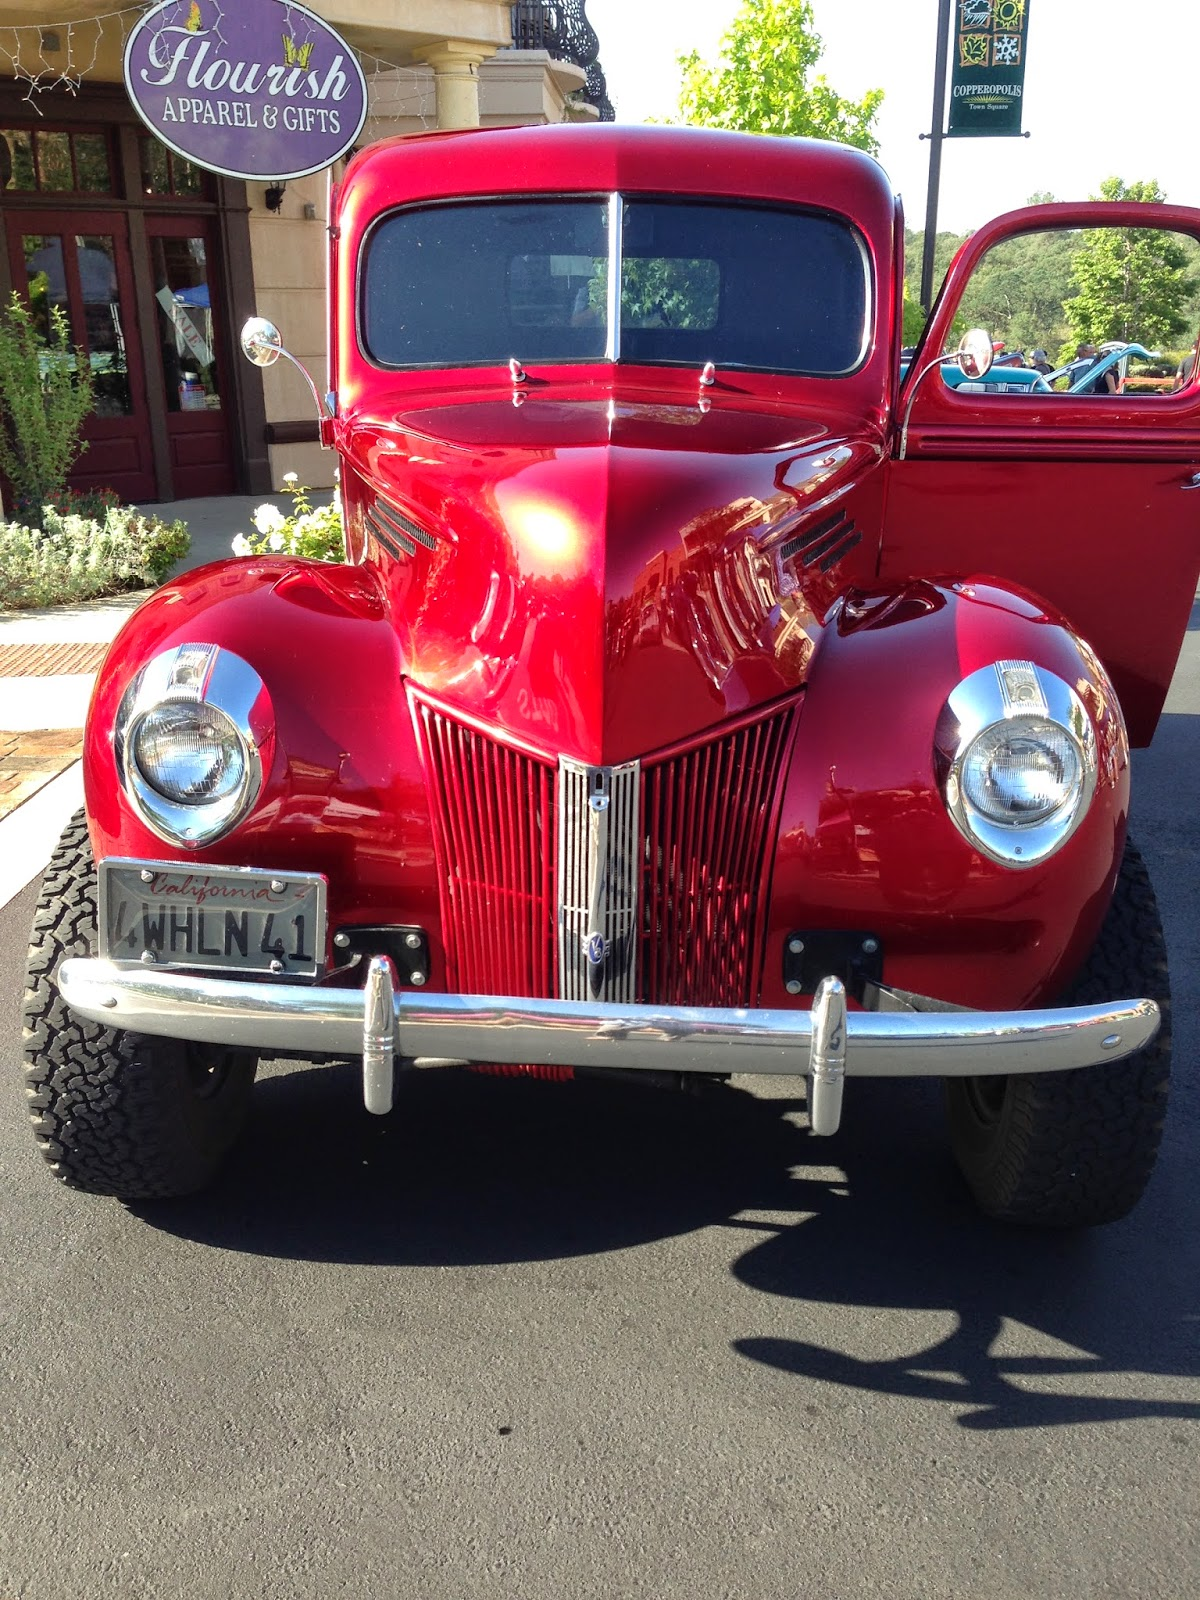 Autoliterate 1941 Ford 4x4 Coupe Red From Colin Washburn At The Copperopolis Calif Car Show Candy Apple Paint Job On This Rig Was Exquisite